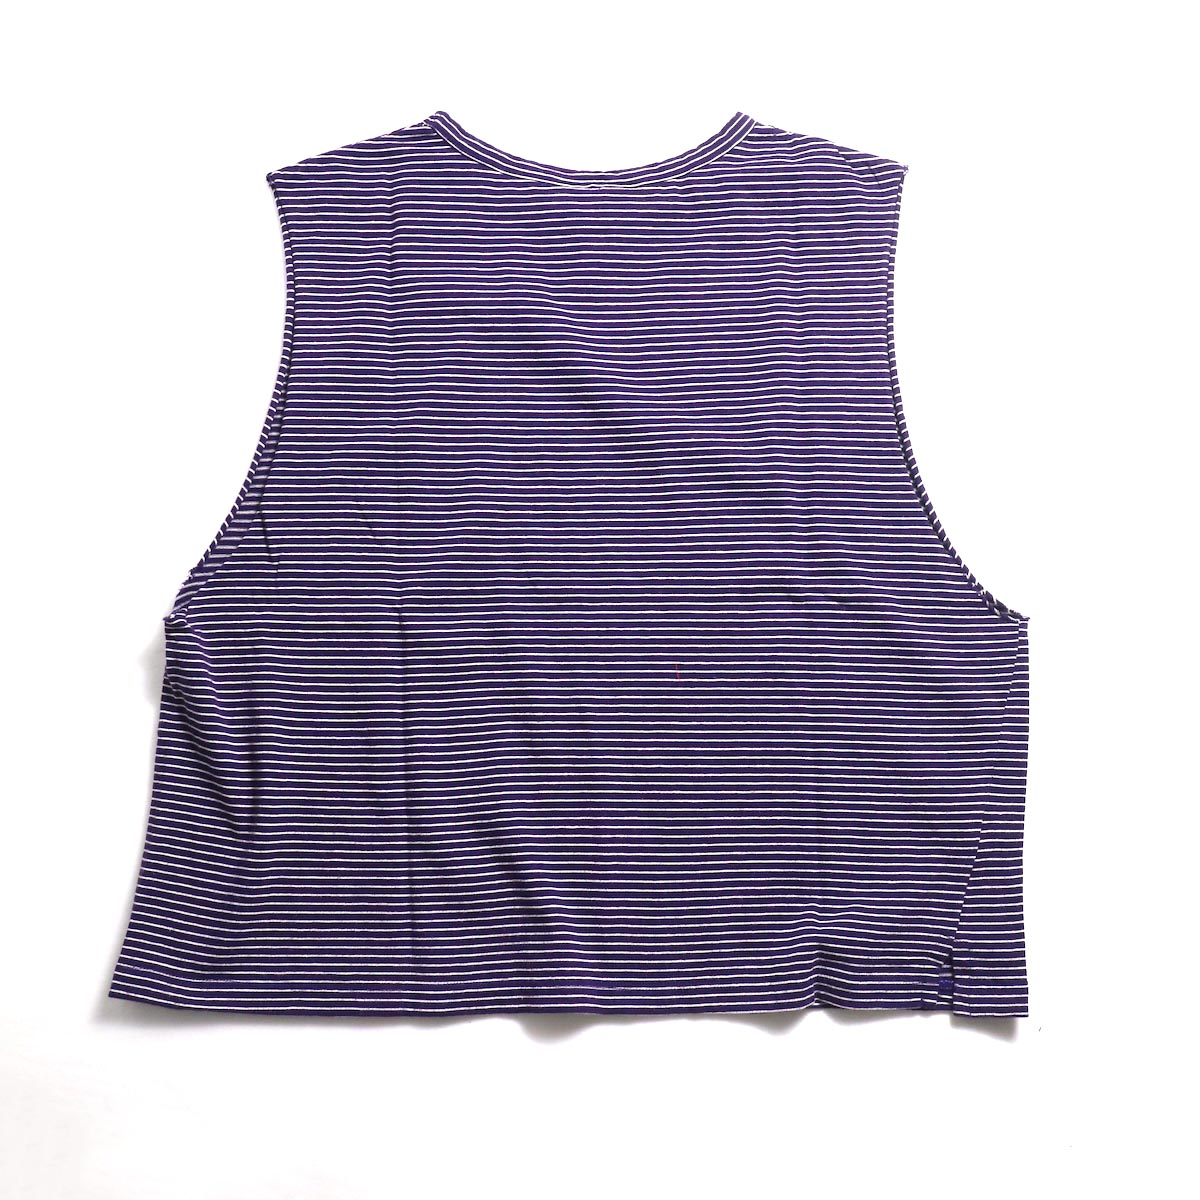 UNUSED / US1568 Border No Sleeve Tee (Purple×White) 背面